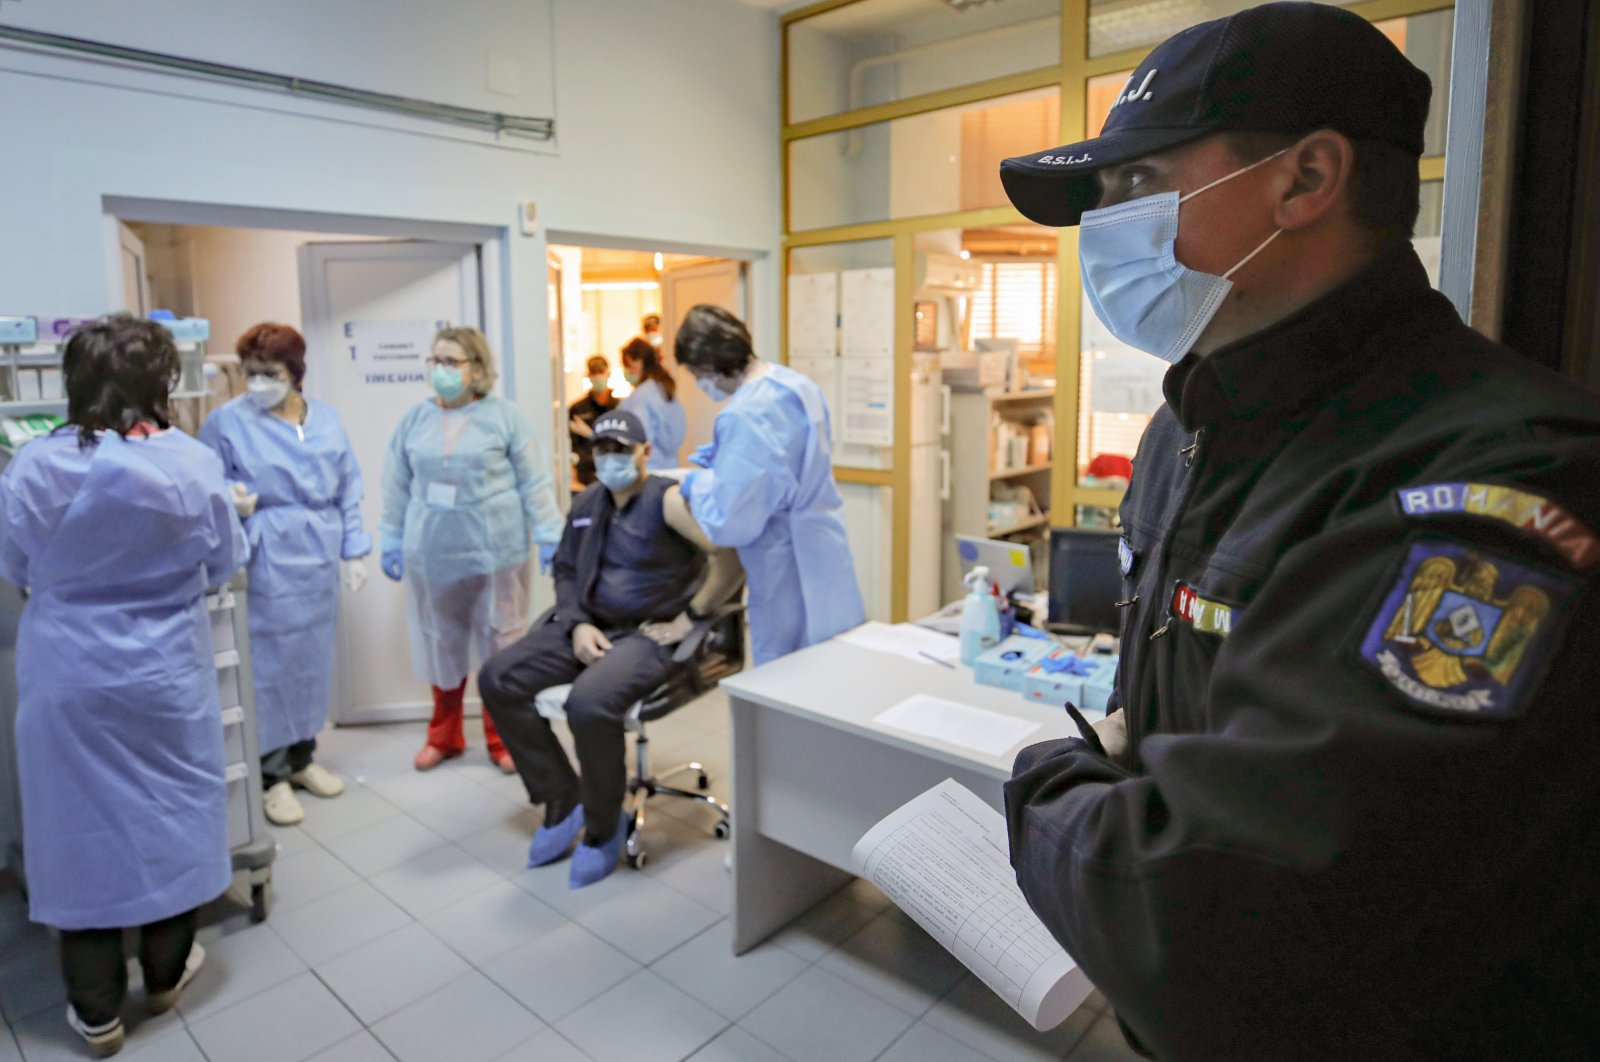 A Romanian gendarme waits to get a COVID-19 vaccine at a hospital in Bucharest, Romania, Jan. 15, 2021. (AP Photo)